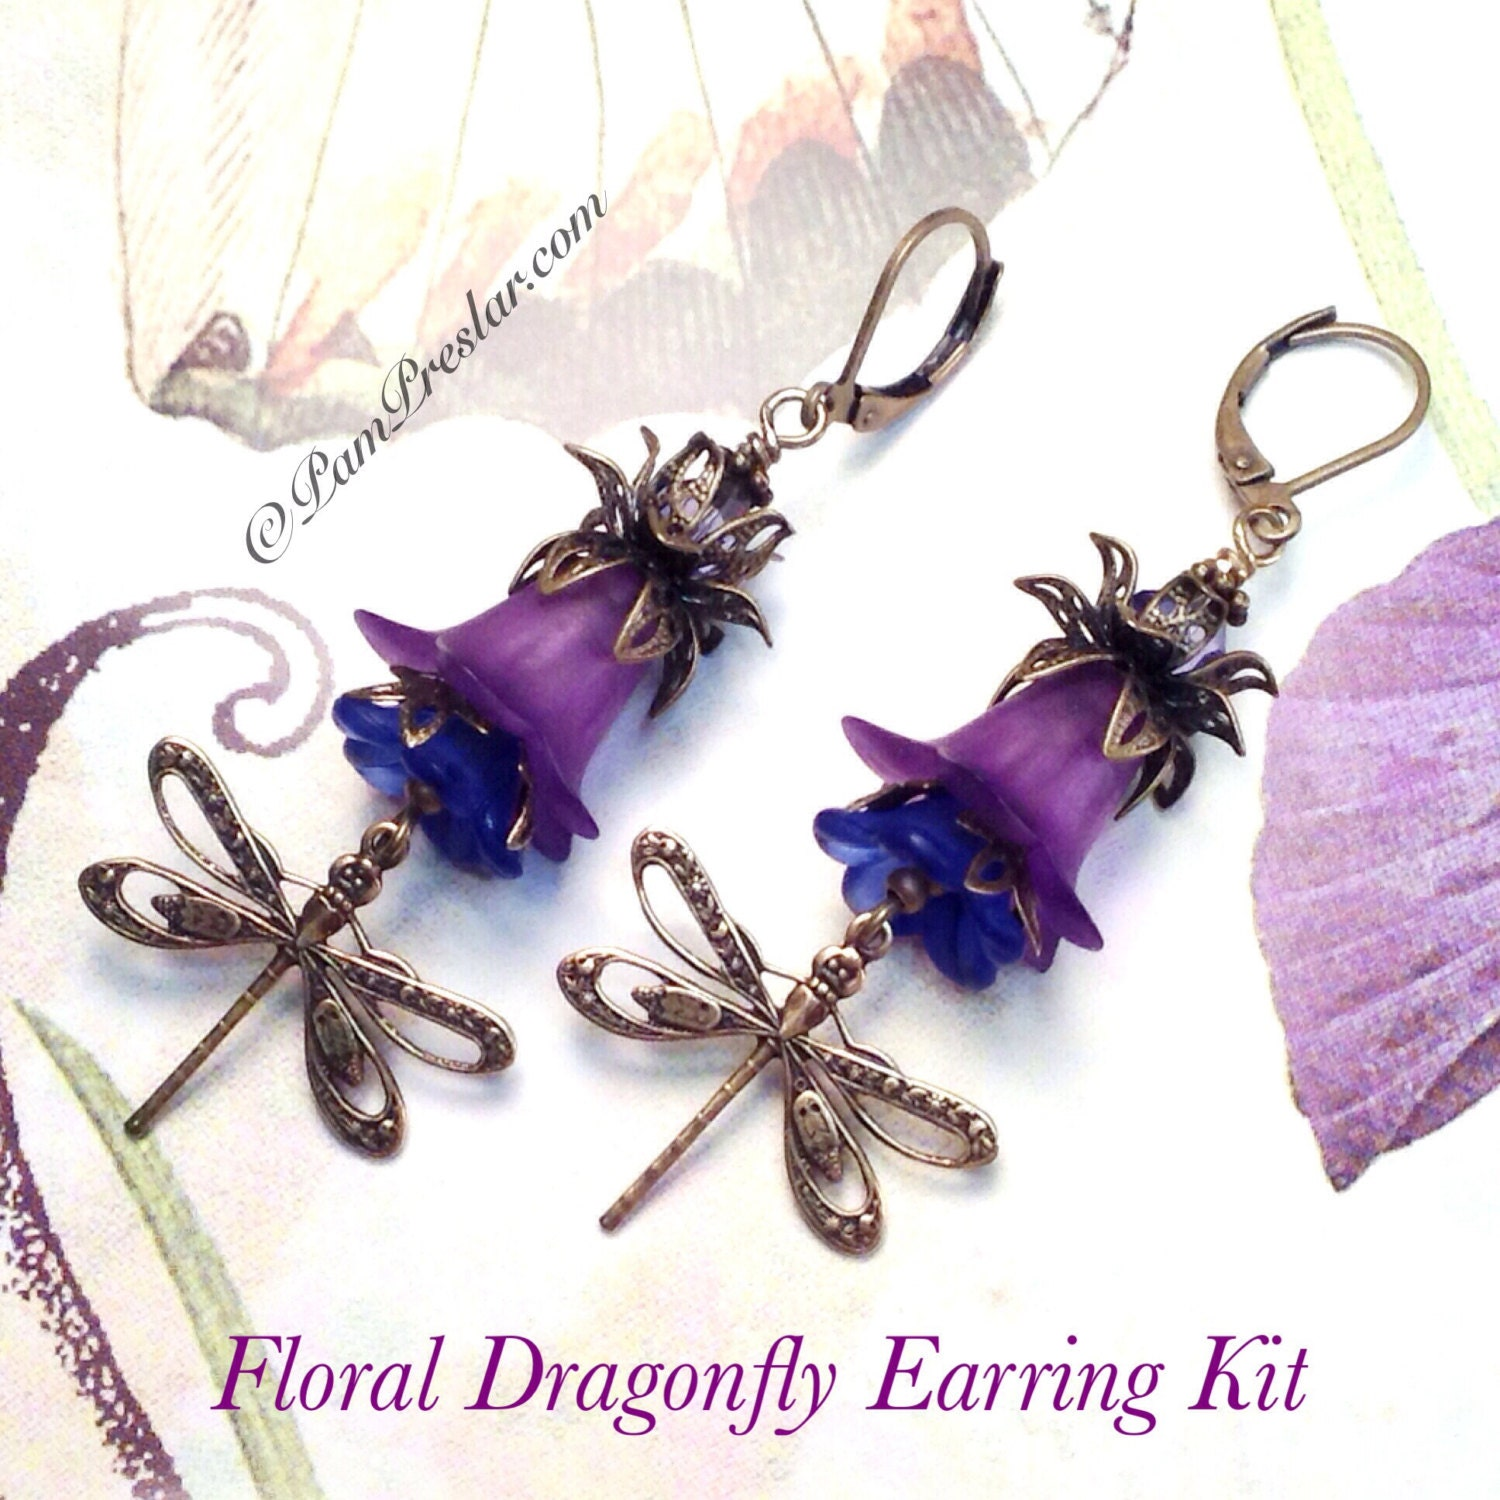 Do It Yourself Jewelry: Do It Yourself Jewelry Kit Make Your Own By JewelryToolBox